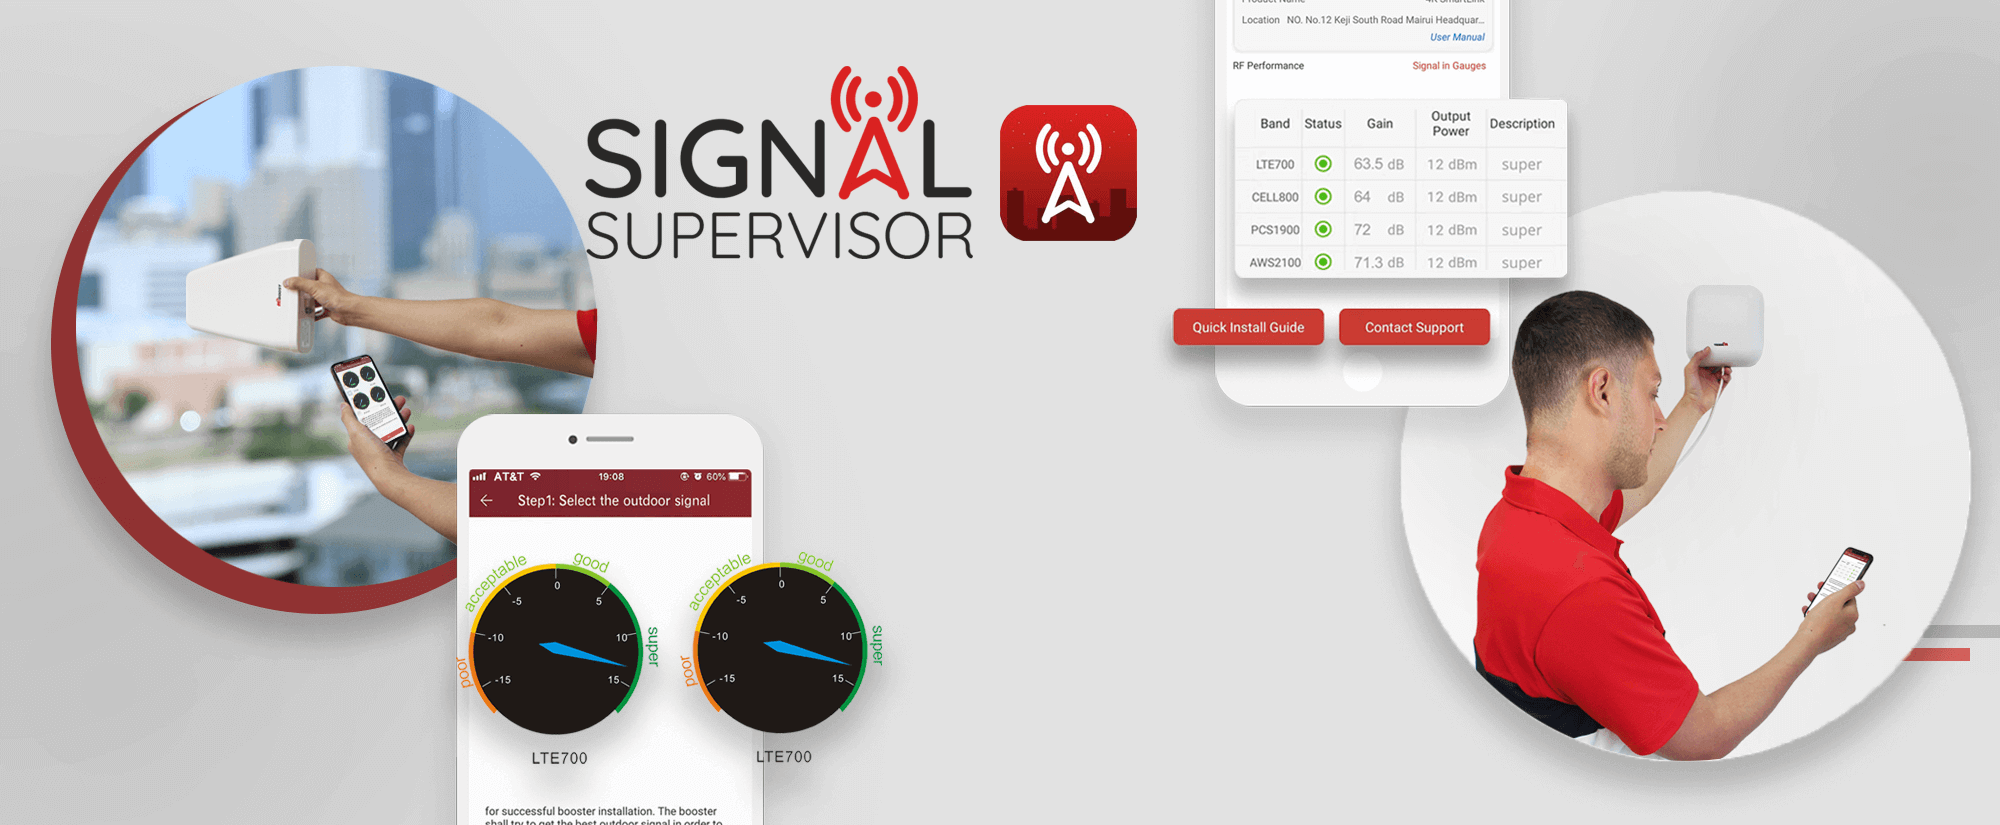 HiBoost Cell Phone Signal Booster-Signal Supervisor